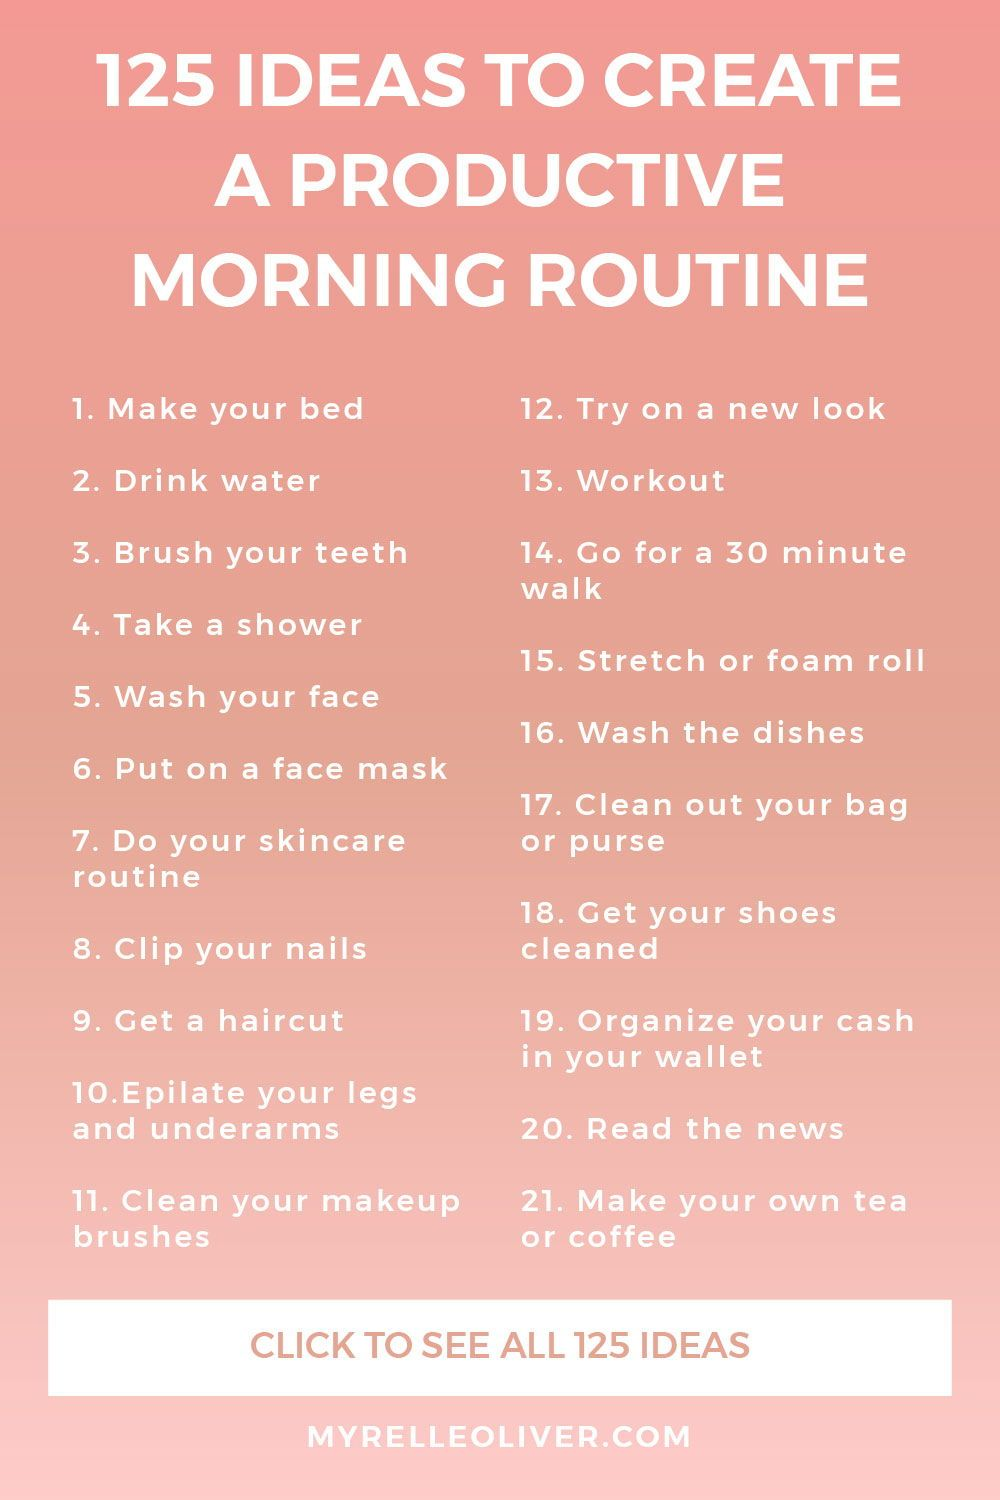 125 Ideas To Create A Productive Morning Routine | Myrelle Oliver